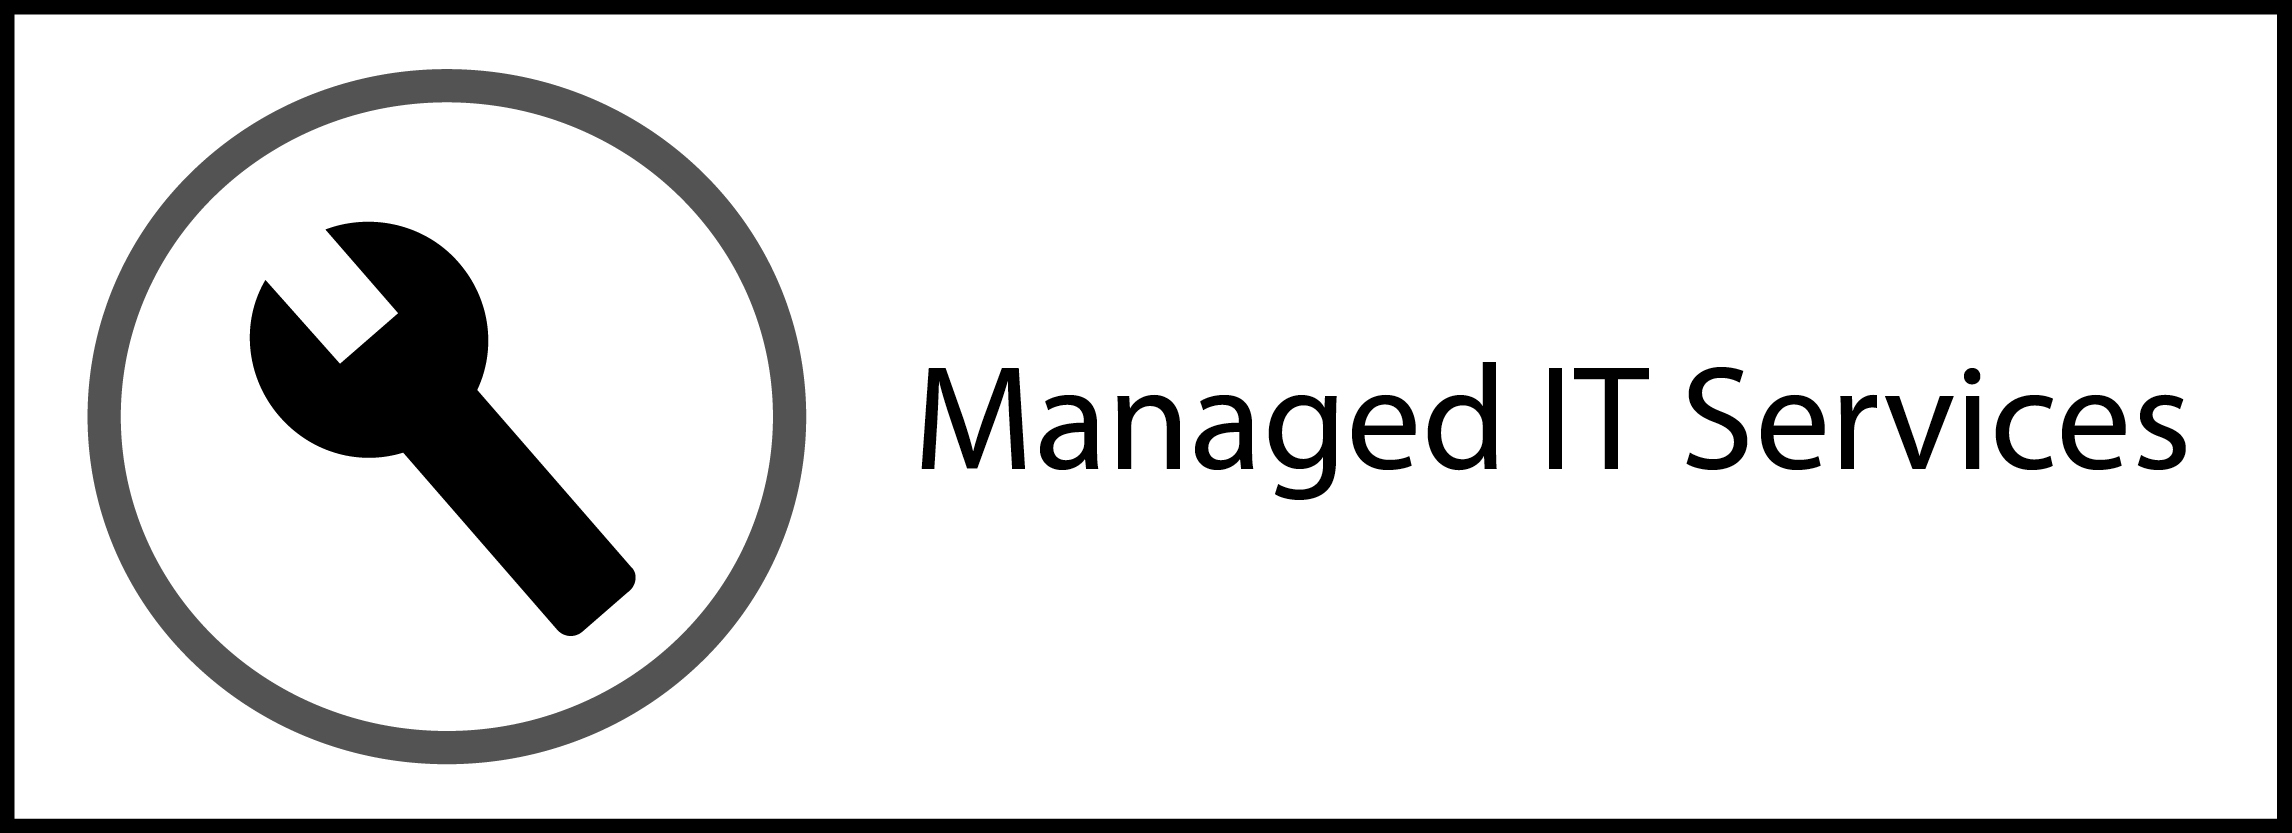 managed IT services, it services toronto, it support toronto, toronto it support, toronto it services, IT help toronto, IT department, network resources, web applications, private cloud services, cyber security, data backups, help desk support, computer maintenance,